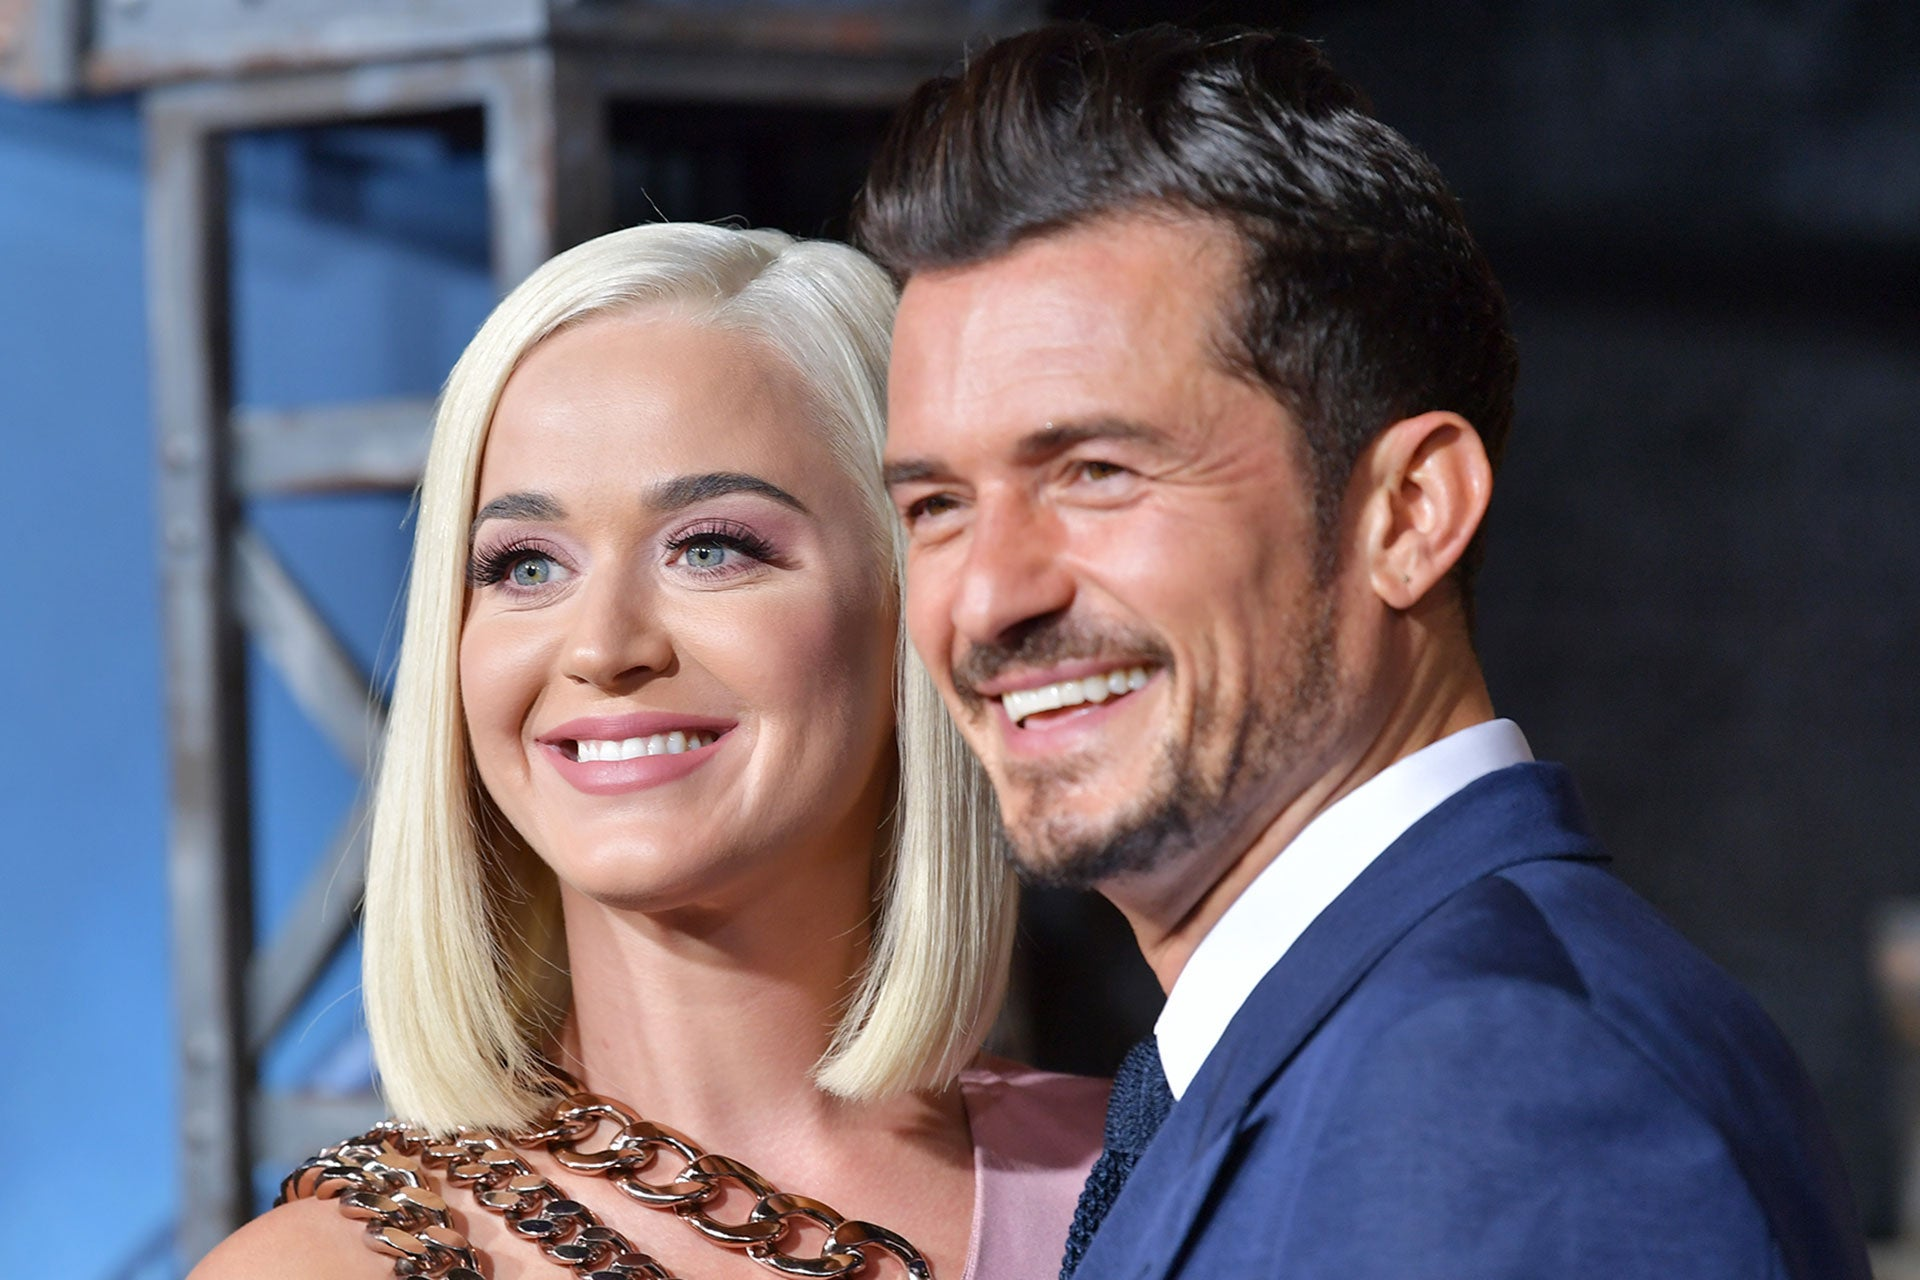 Katy Perry a Orlando Bloom, srpen 2019 Autor: Getty Images